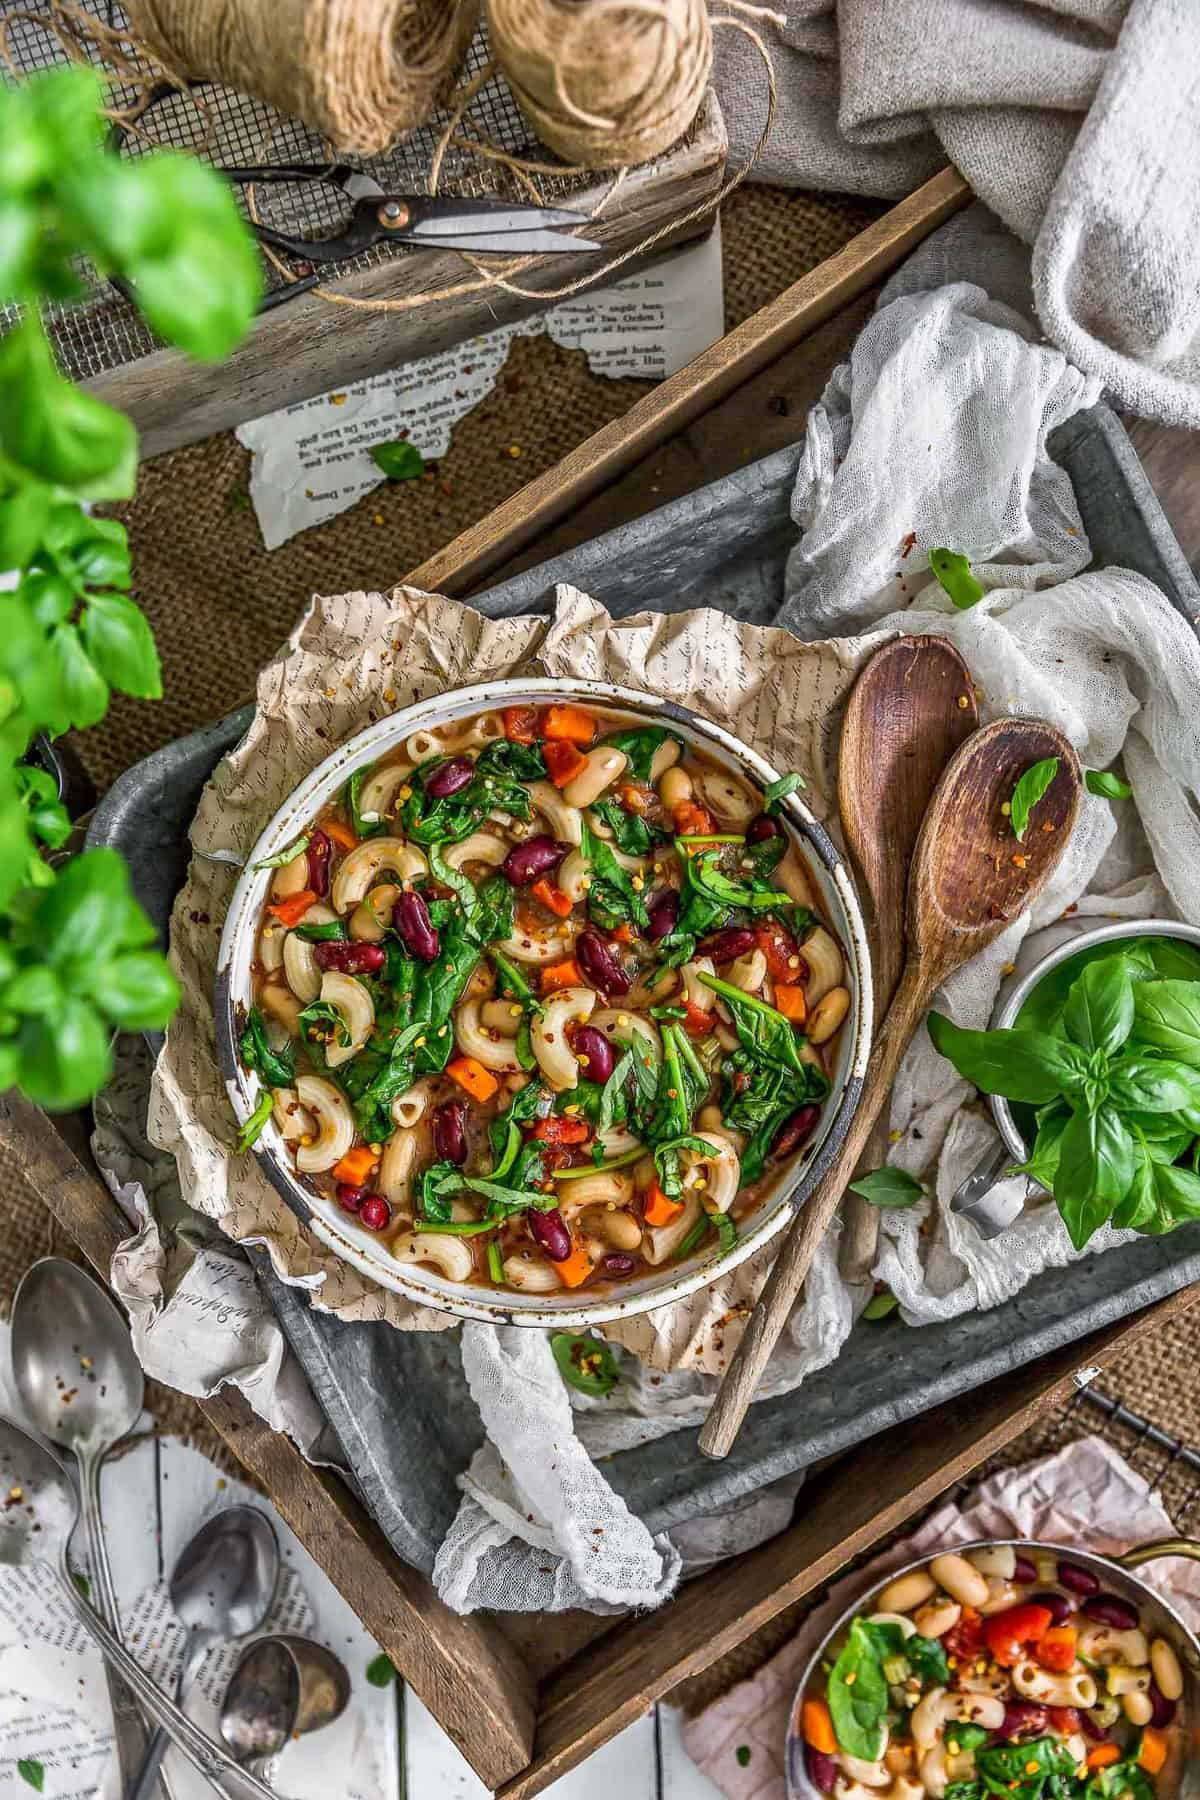 Tablescape of Italian Pasta Fagioli